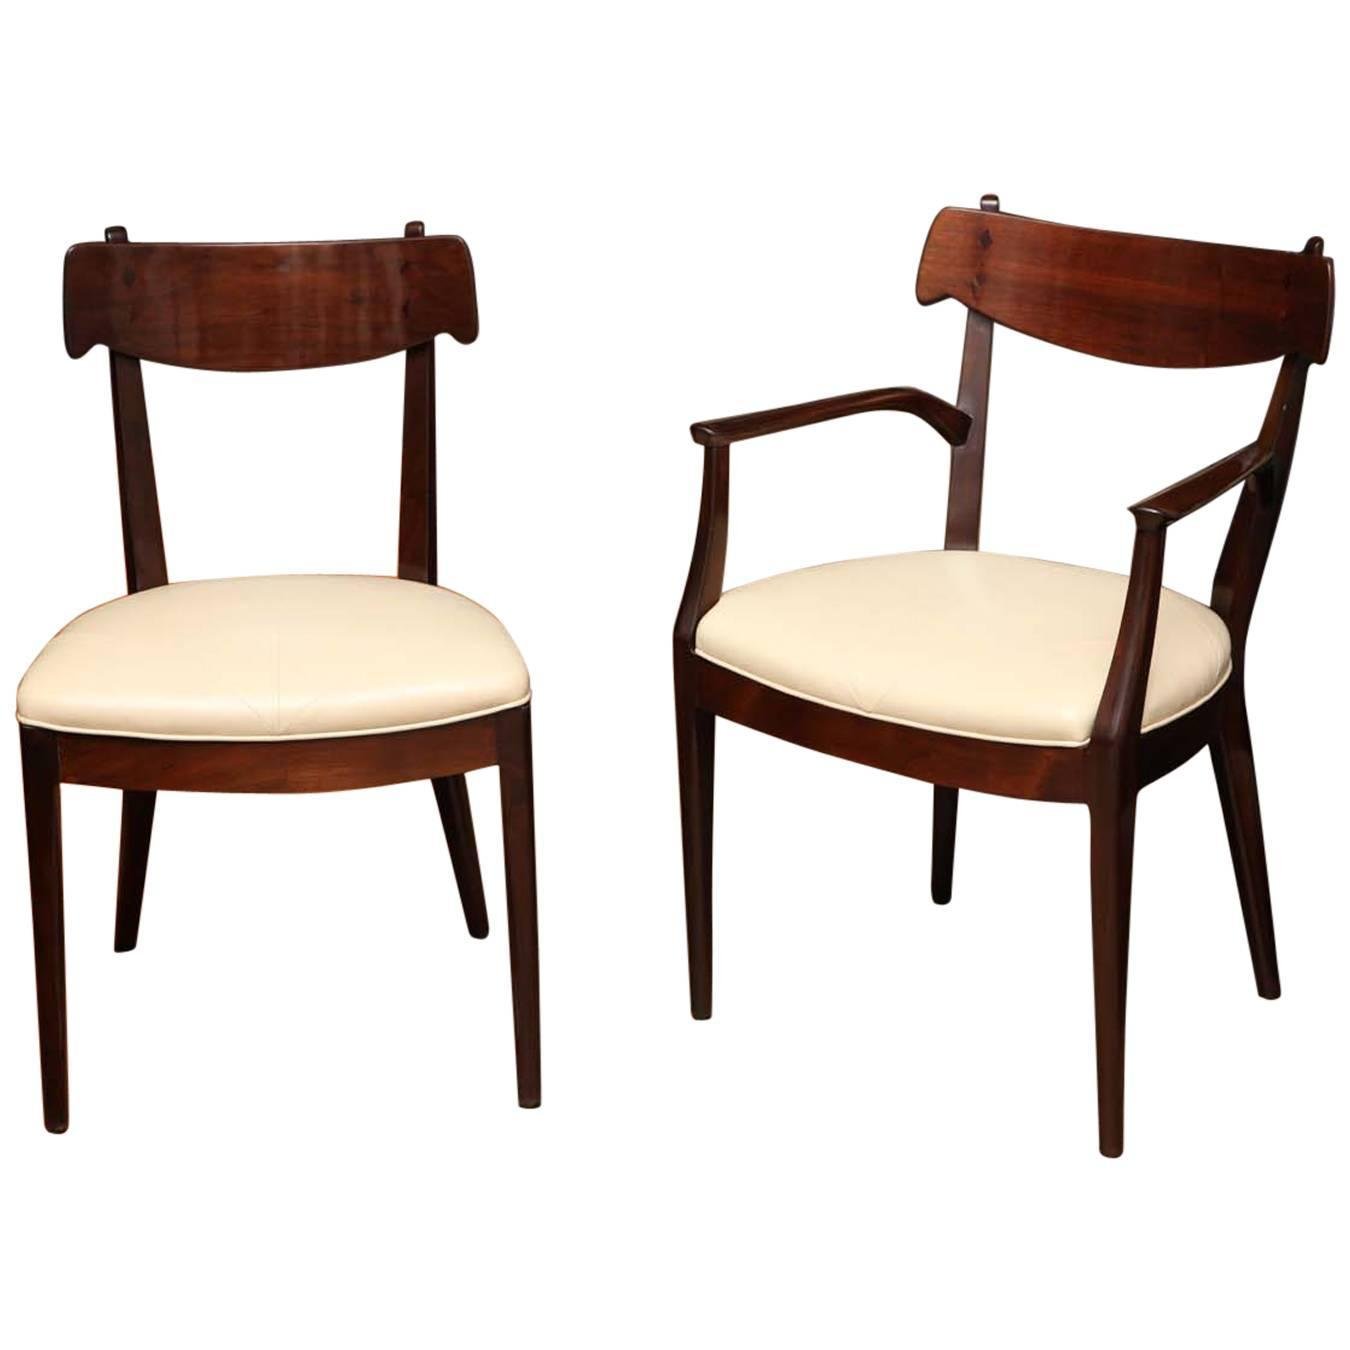 Drexel Chairs Set Of Drexel Dining Chairs For Sale At 1stdibs